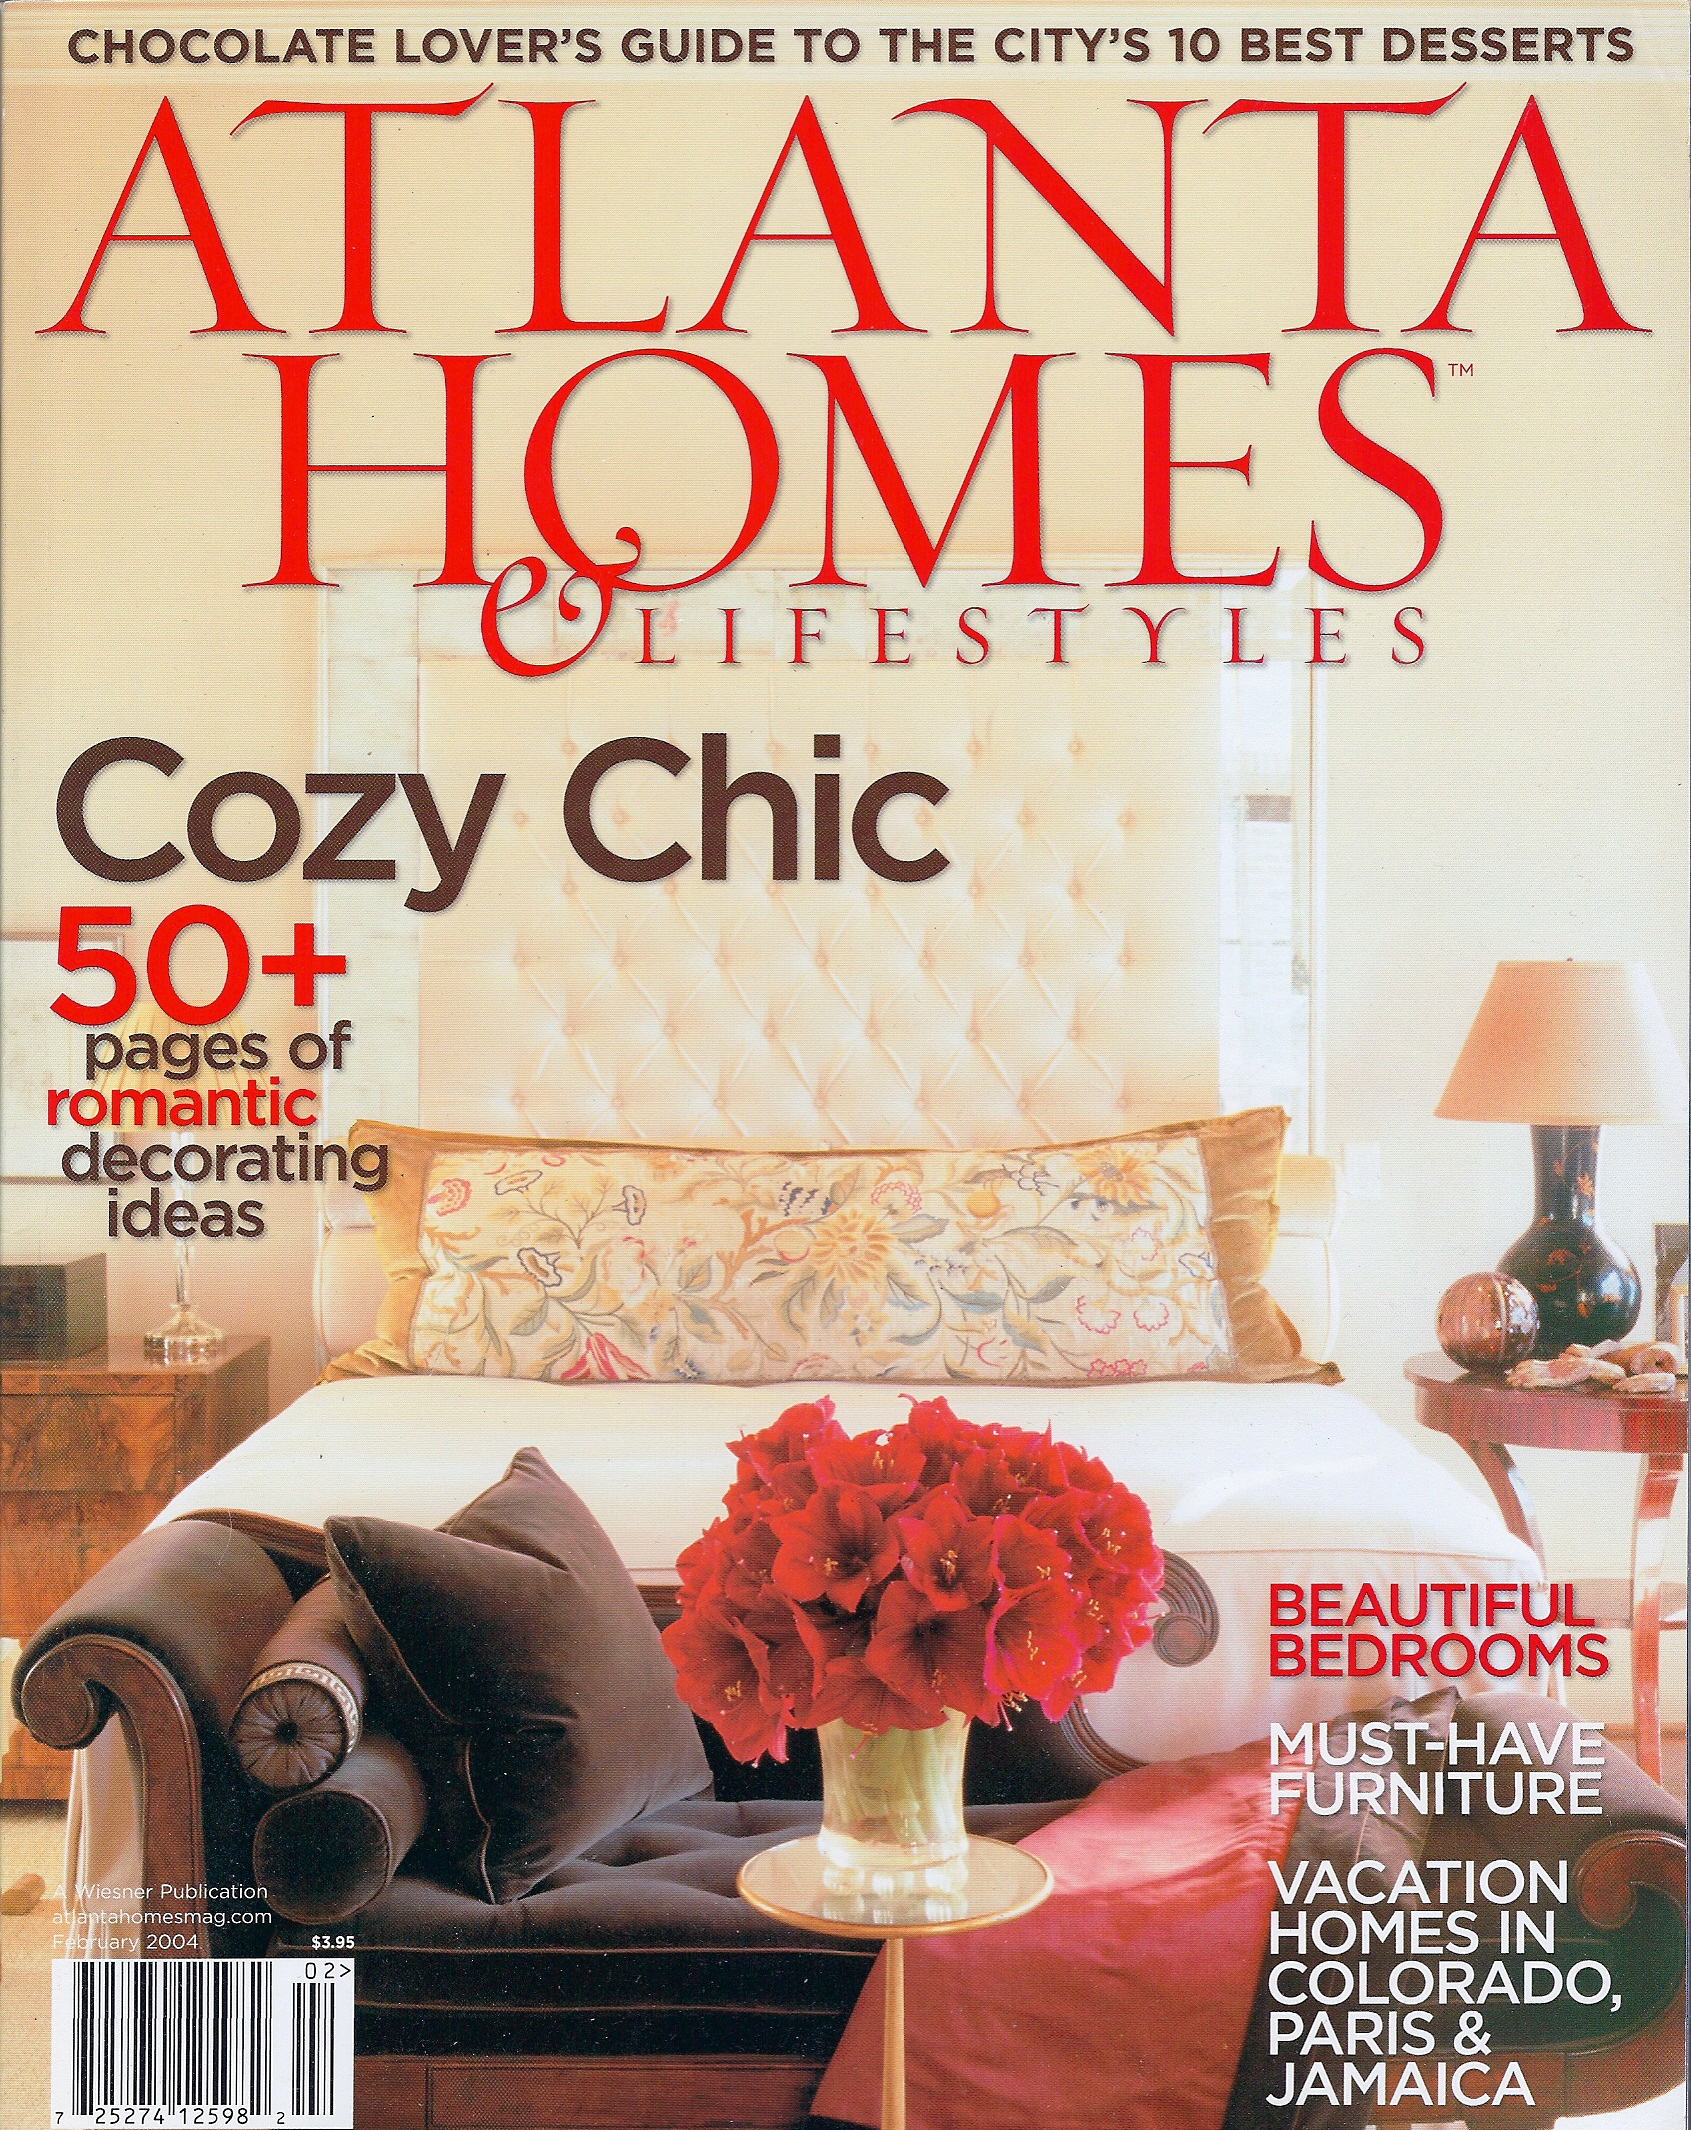 Atlanta Homes Feb 2004